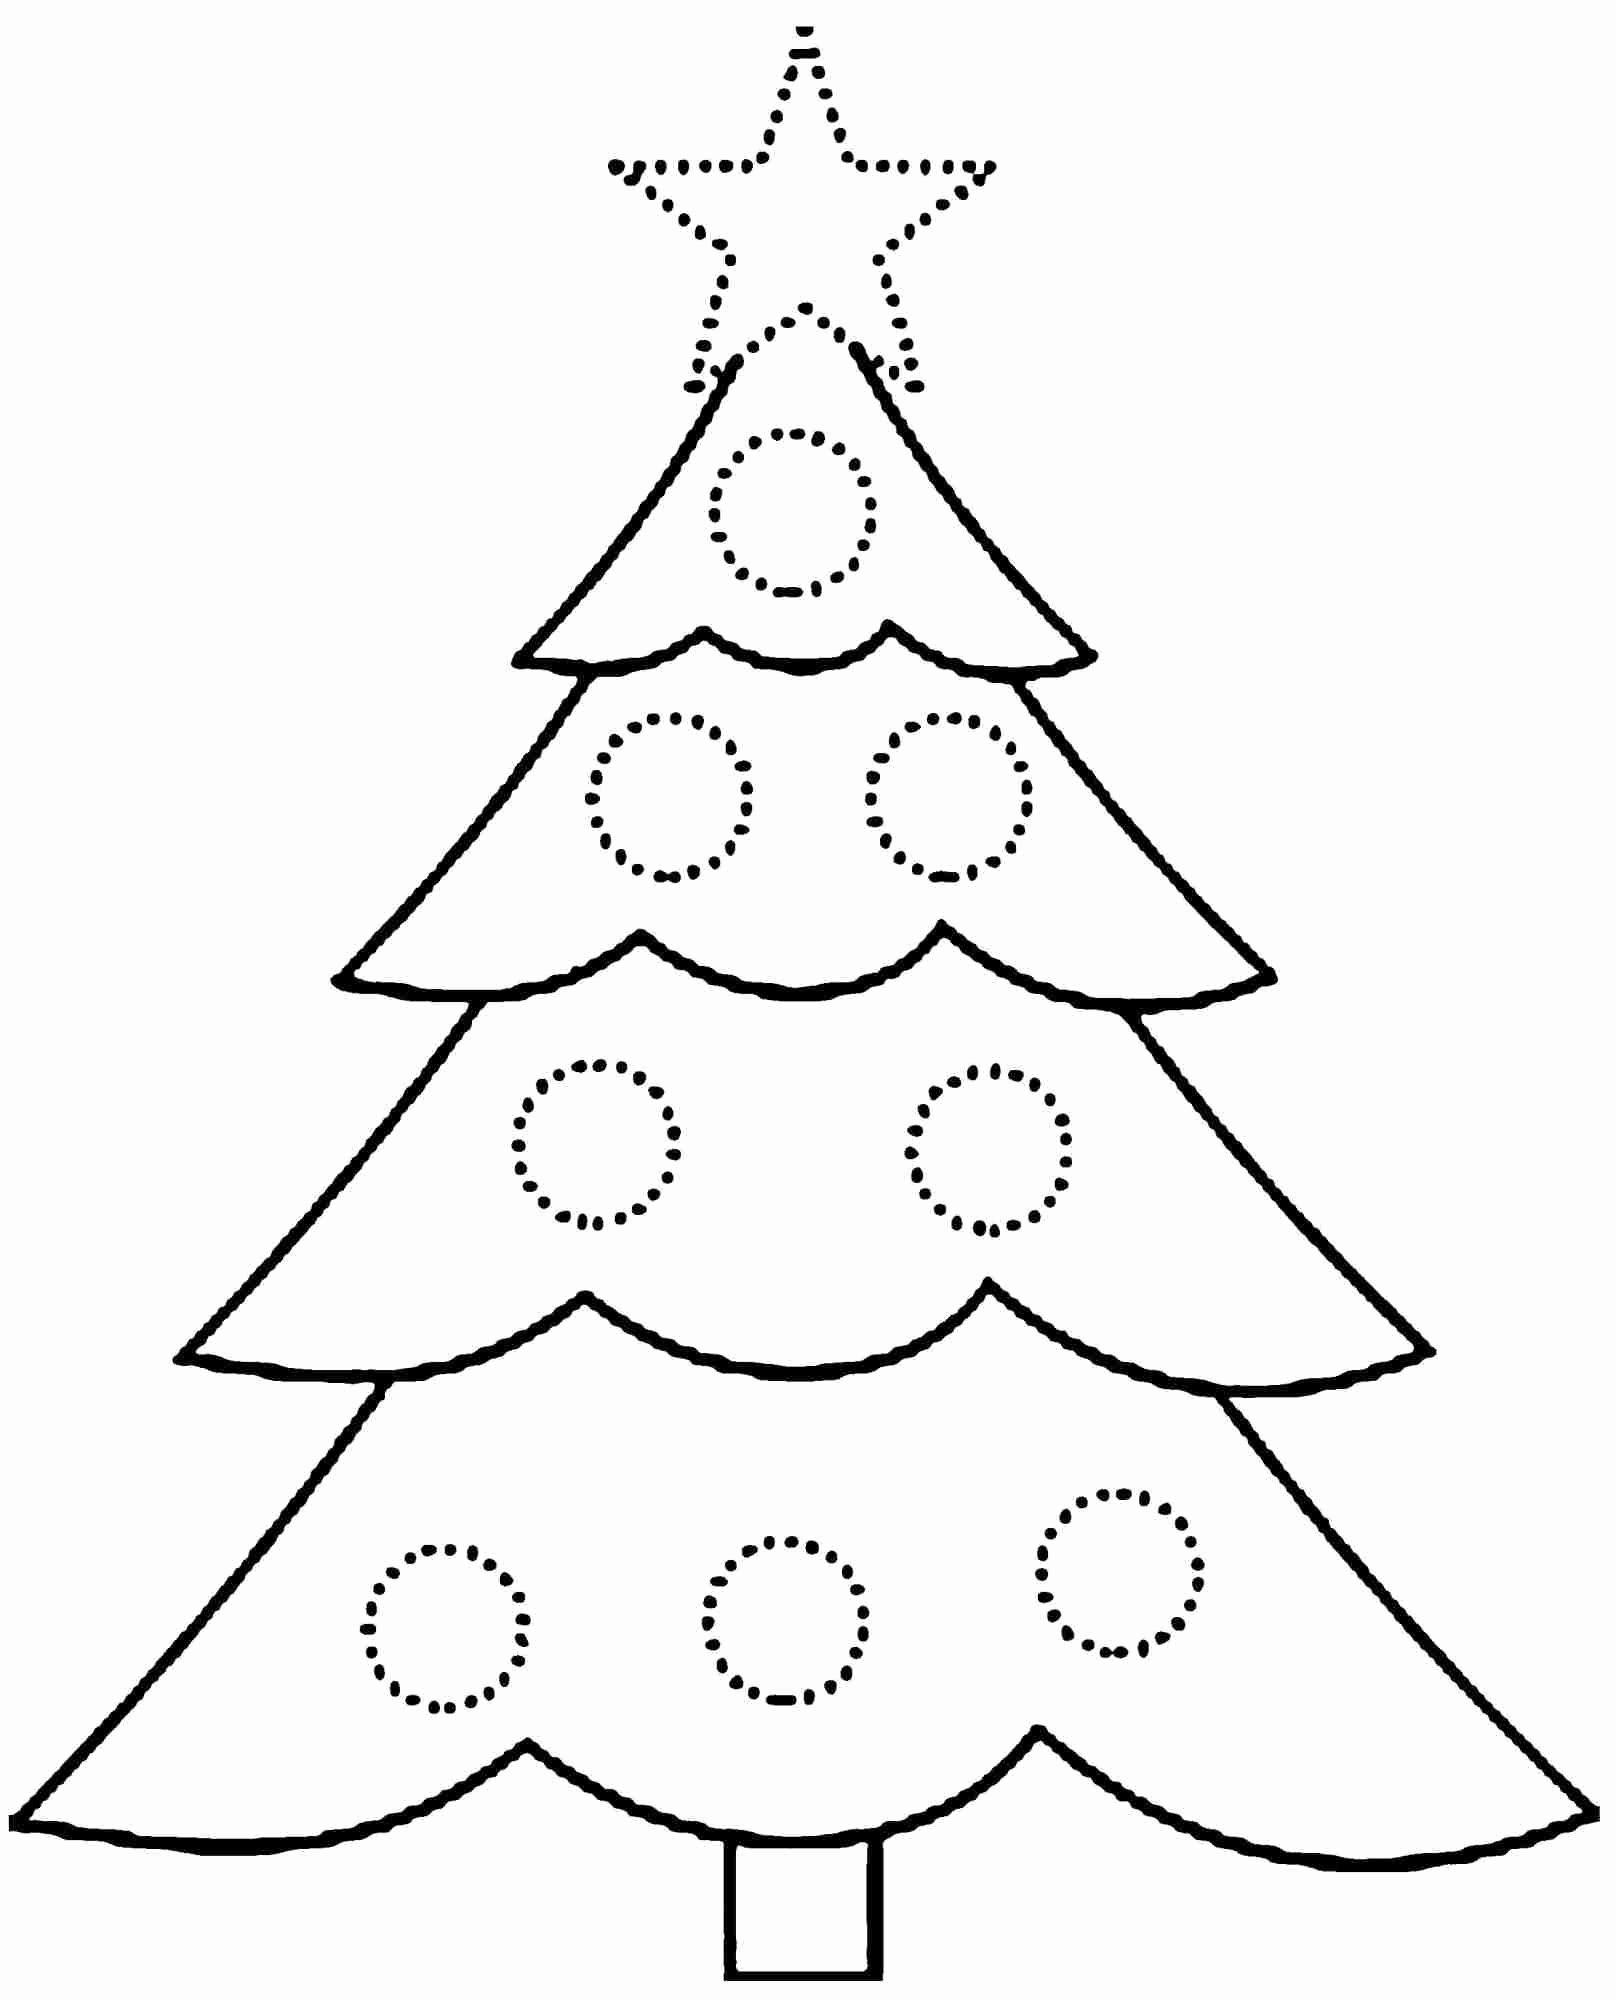 Coloring Pages Worksheets Christmas Tree Page Sheet Meriwer